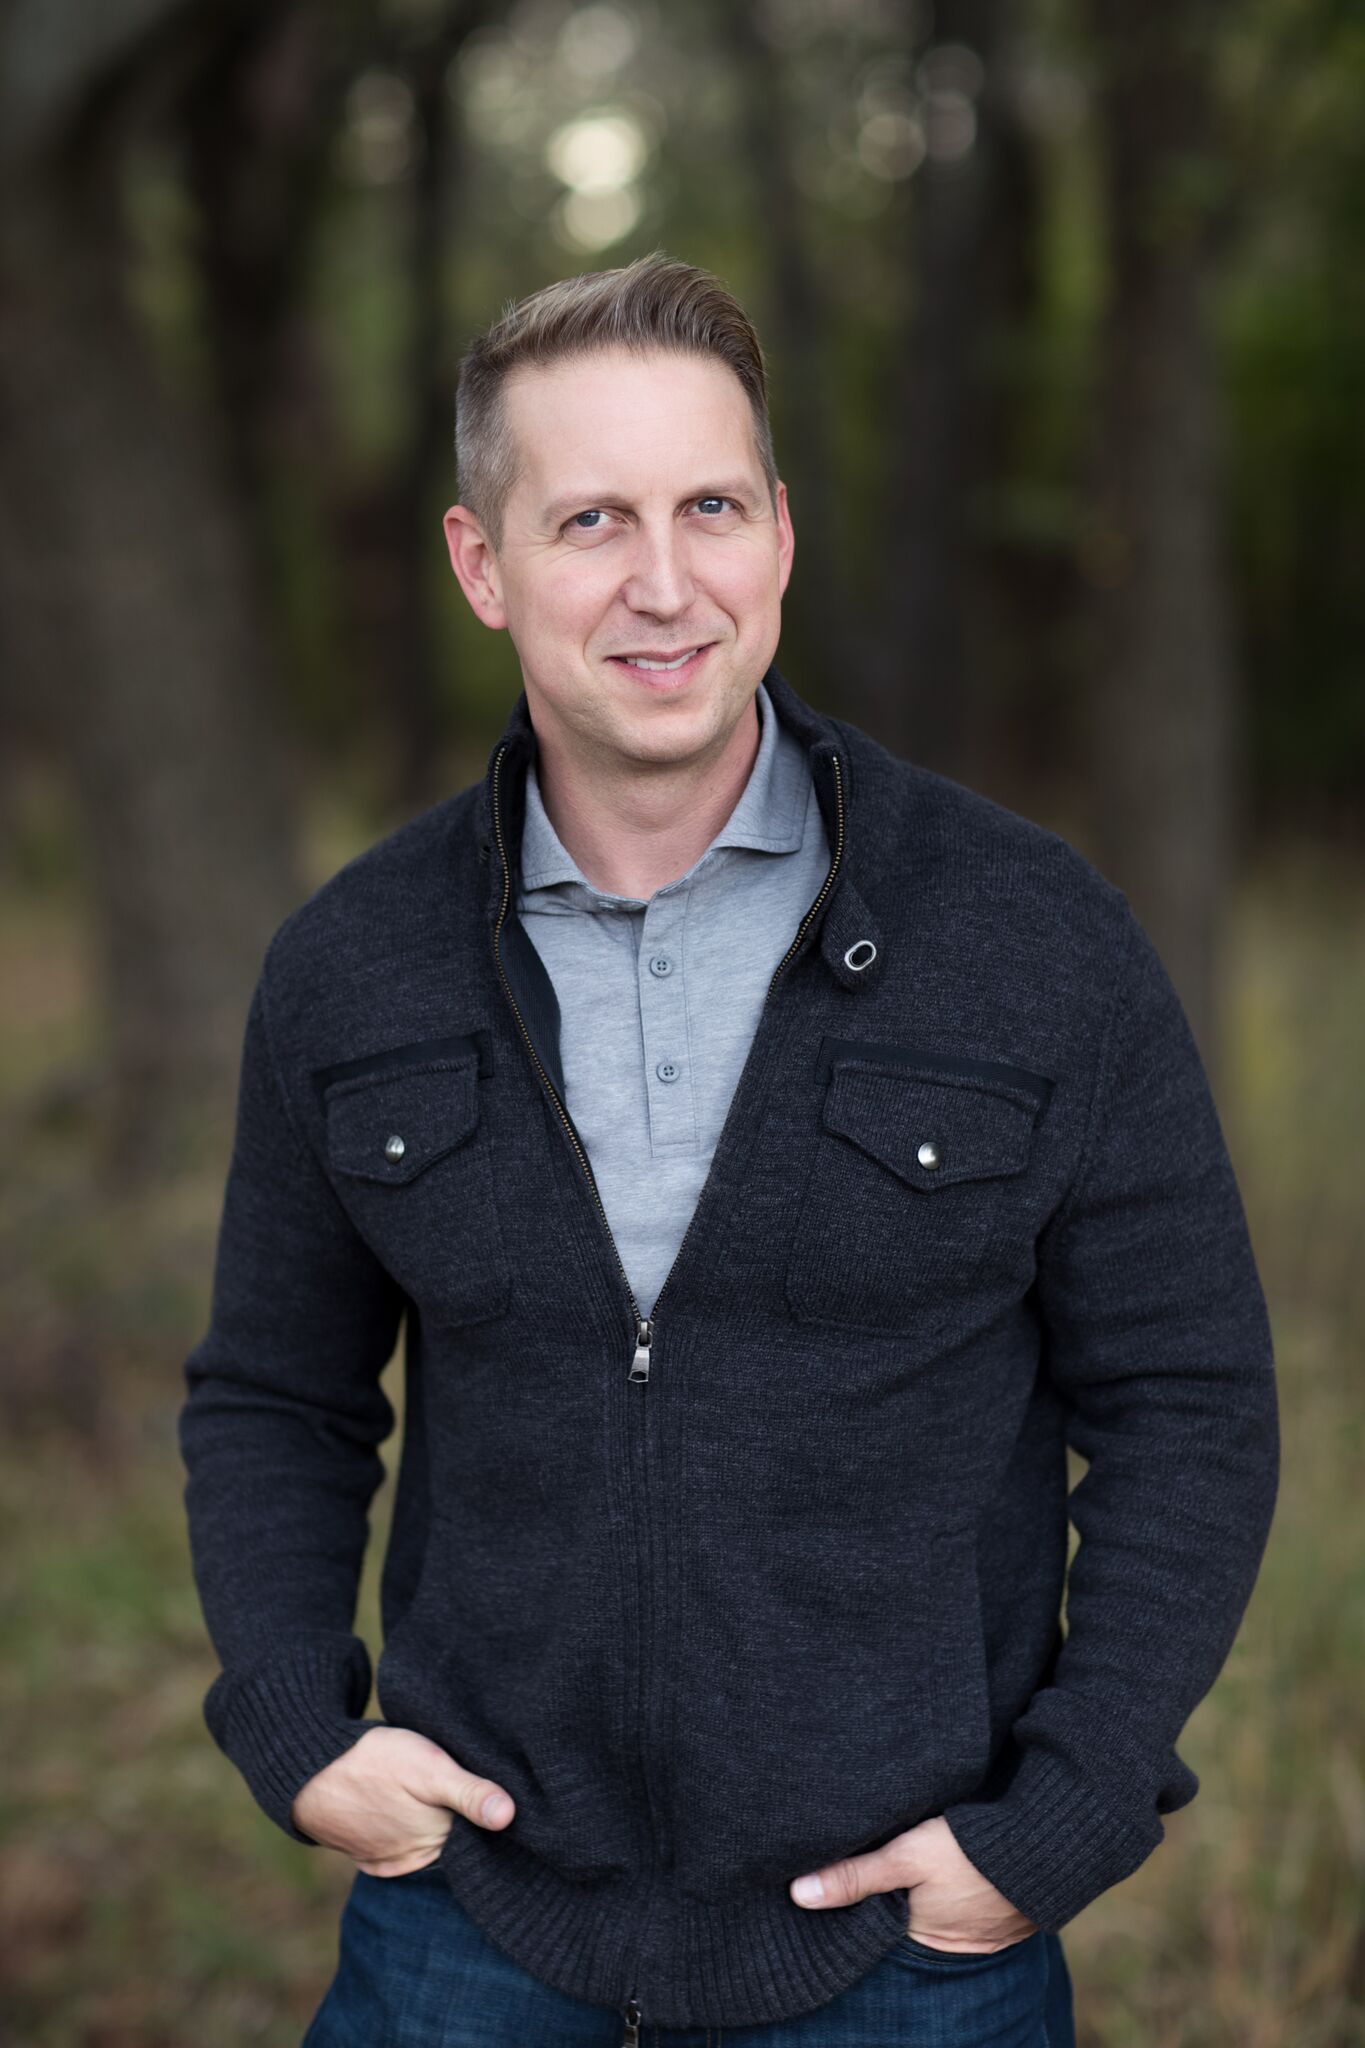 CNLP 207: Bobby Gruenewald on Leveraging First Mover Advantage, Innovation, AI, Technology and the Future Church